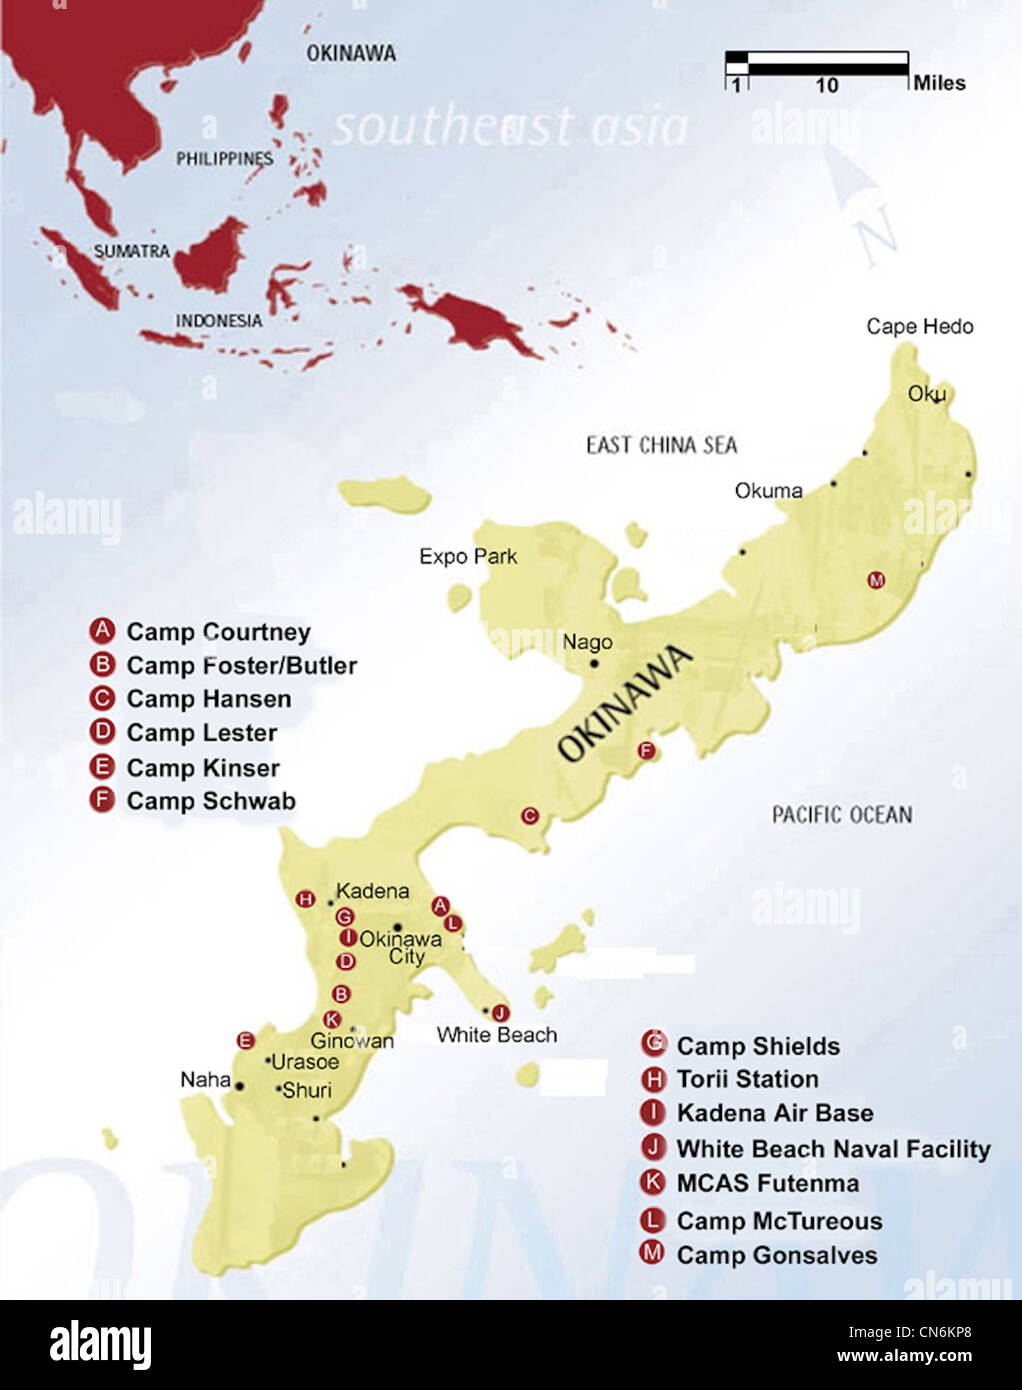 Map of Okinawa showing locations of US Bases Stock Photo 47475744